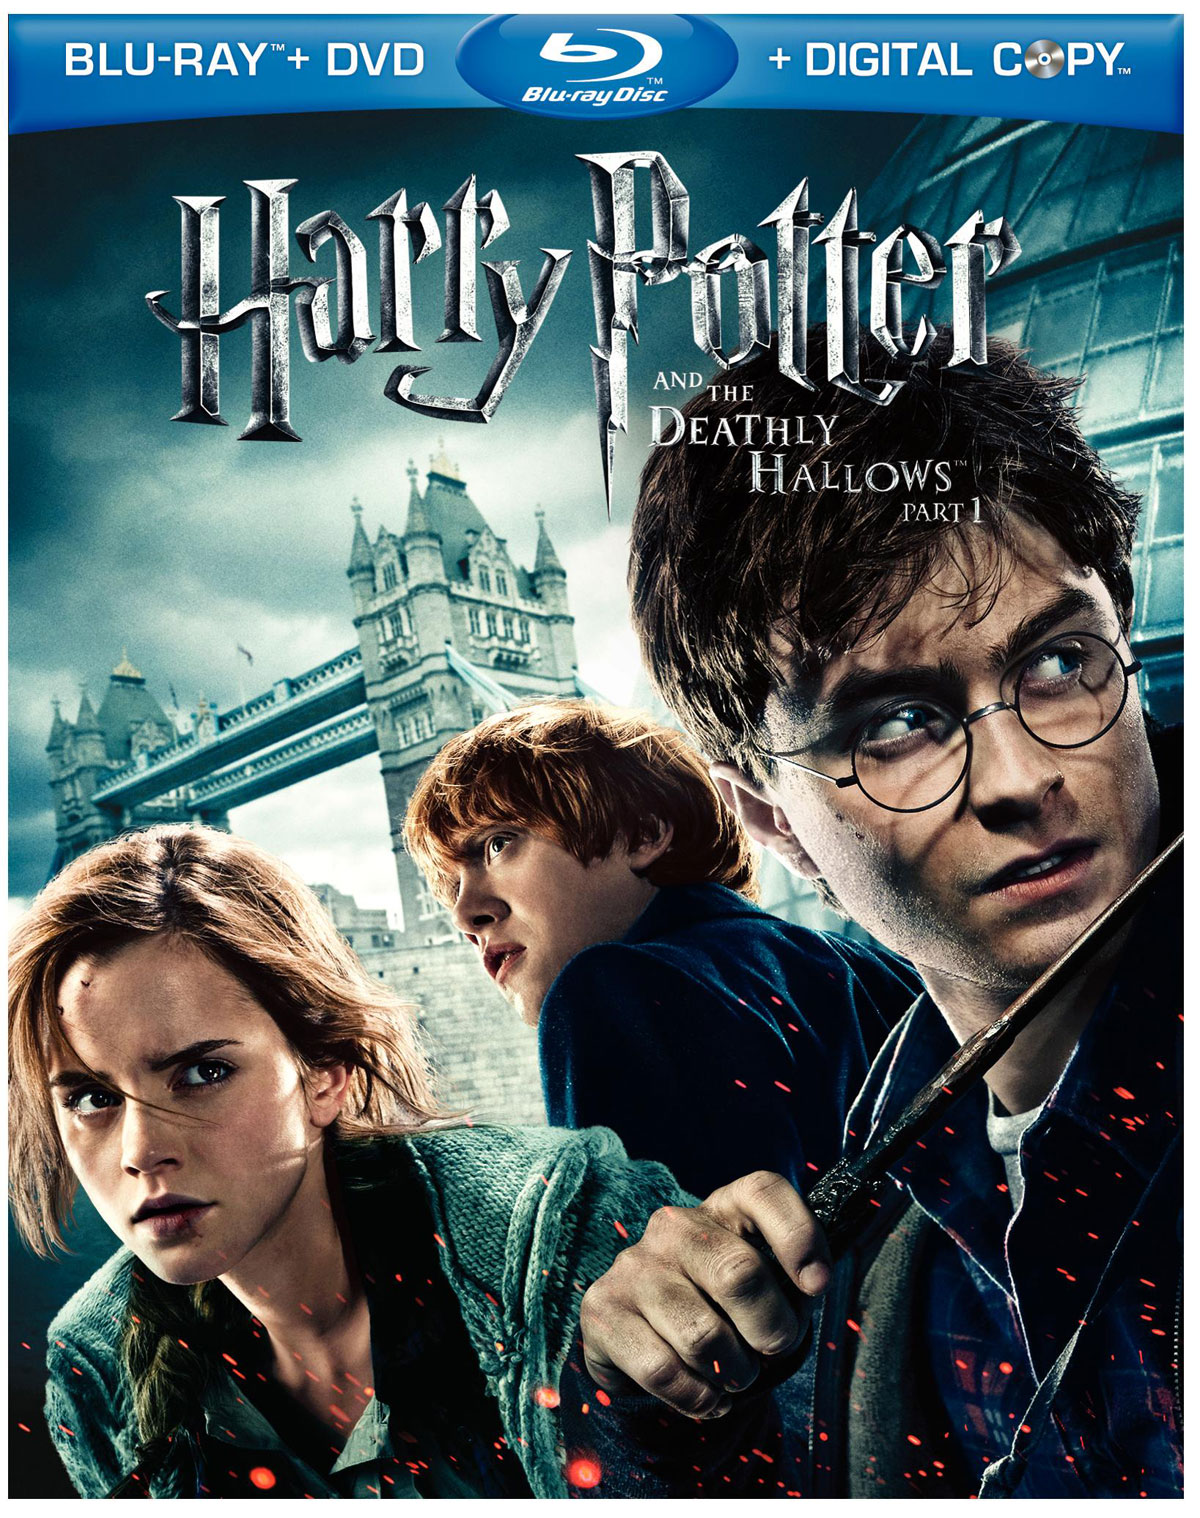 harry potter 7 part 1 blu ray. Part 1 DVD and Blu-Ray